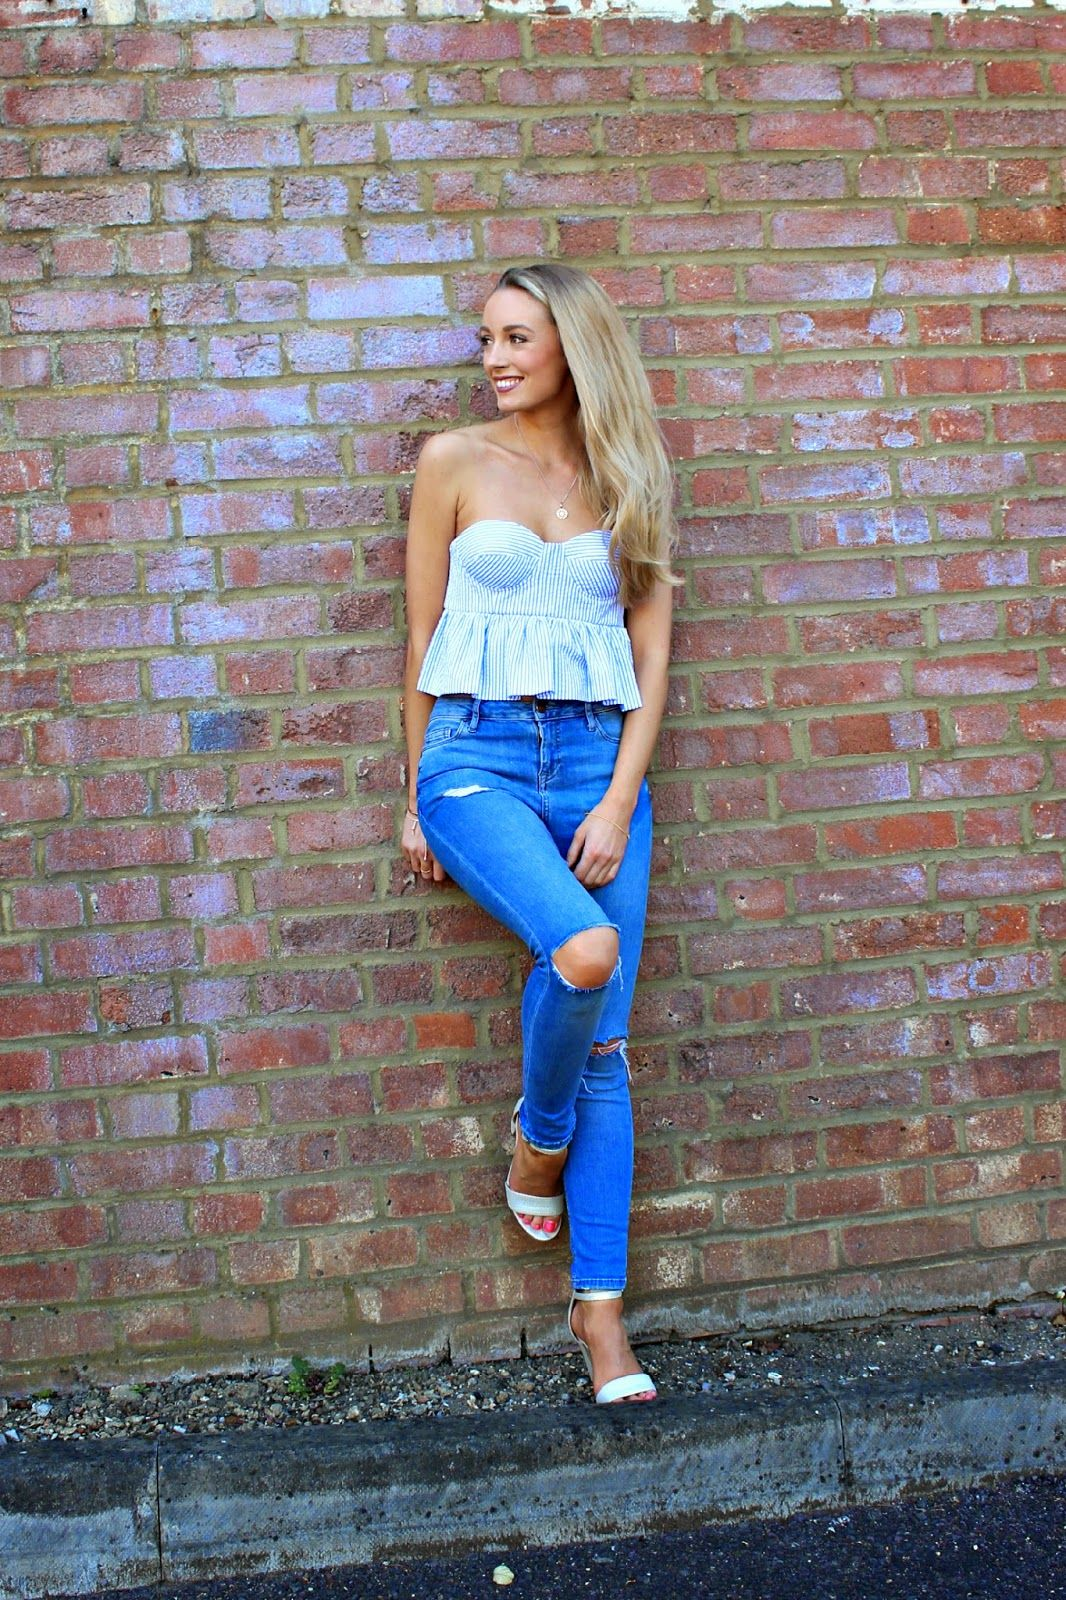 Jack Wills Belles & Whistles Collection  Fashion Shoot - Outfit of the Day - Streetstyle - Fashion Photography